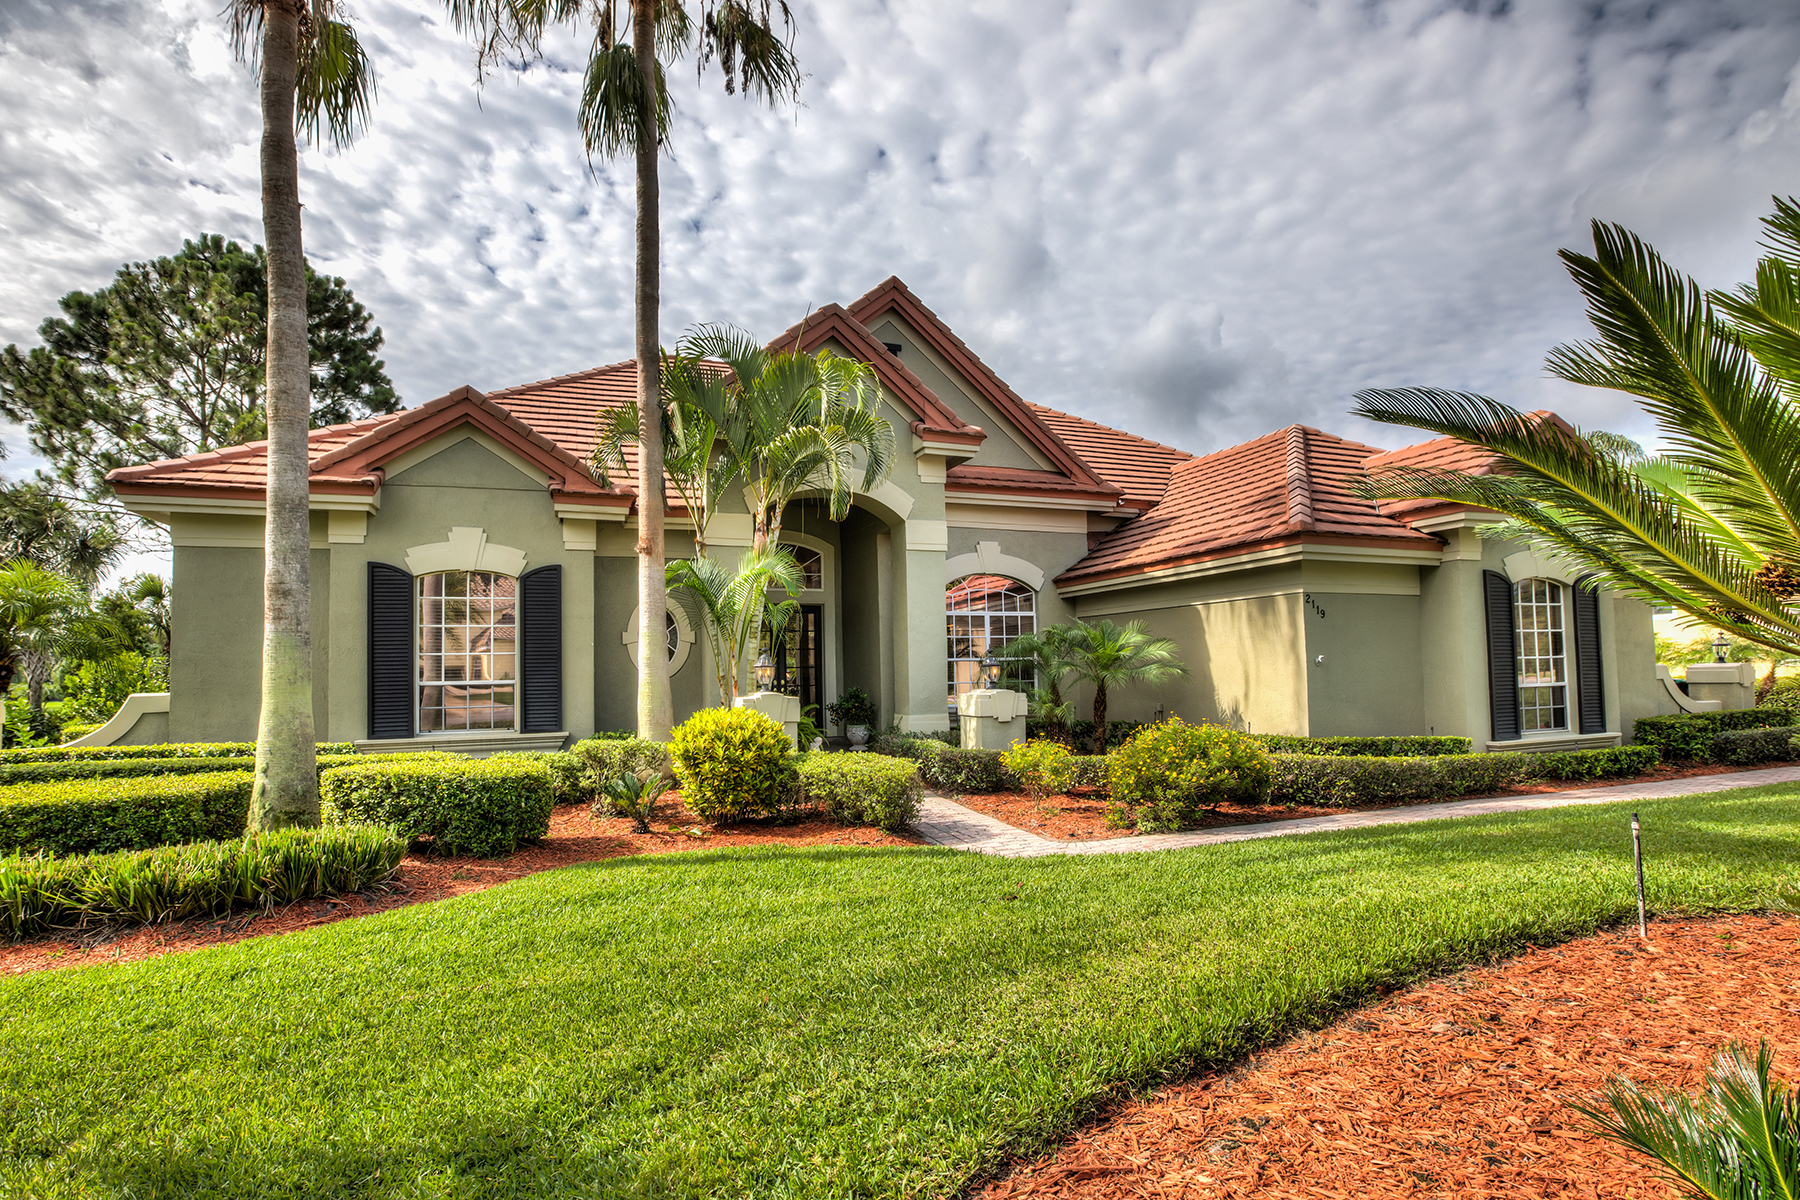 single family homes for Active at WINDERMERE-ORLANDO 2119 Water Key Dr Windermere, Florida 34786 United States